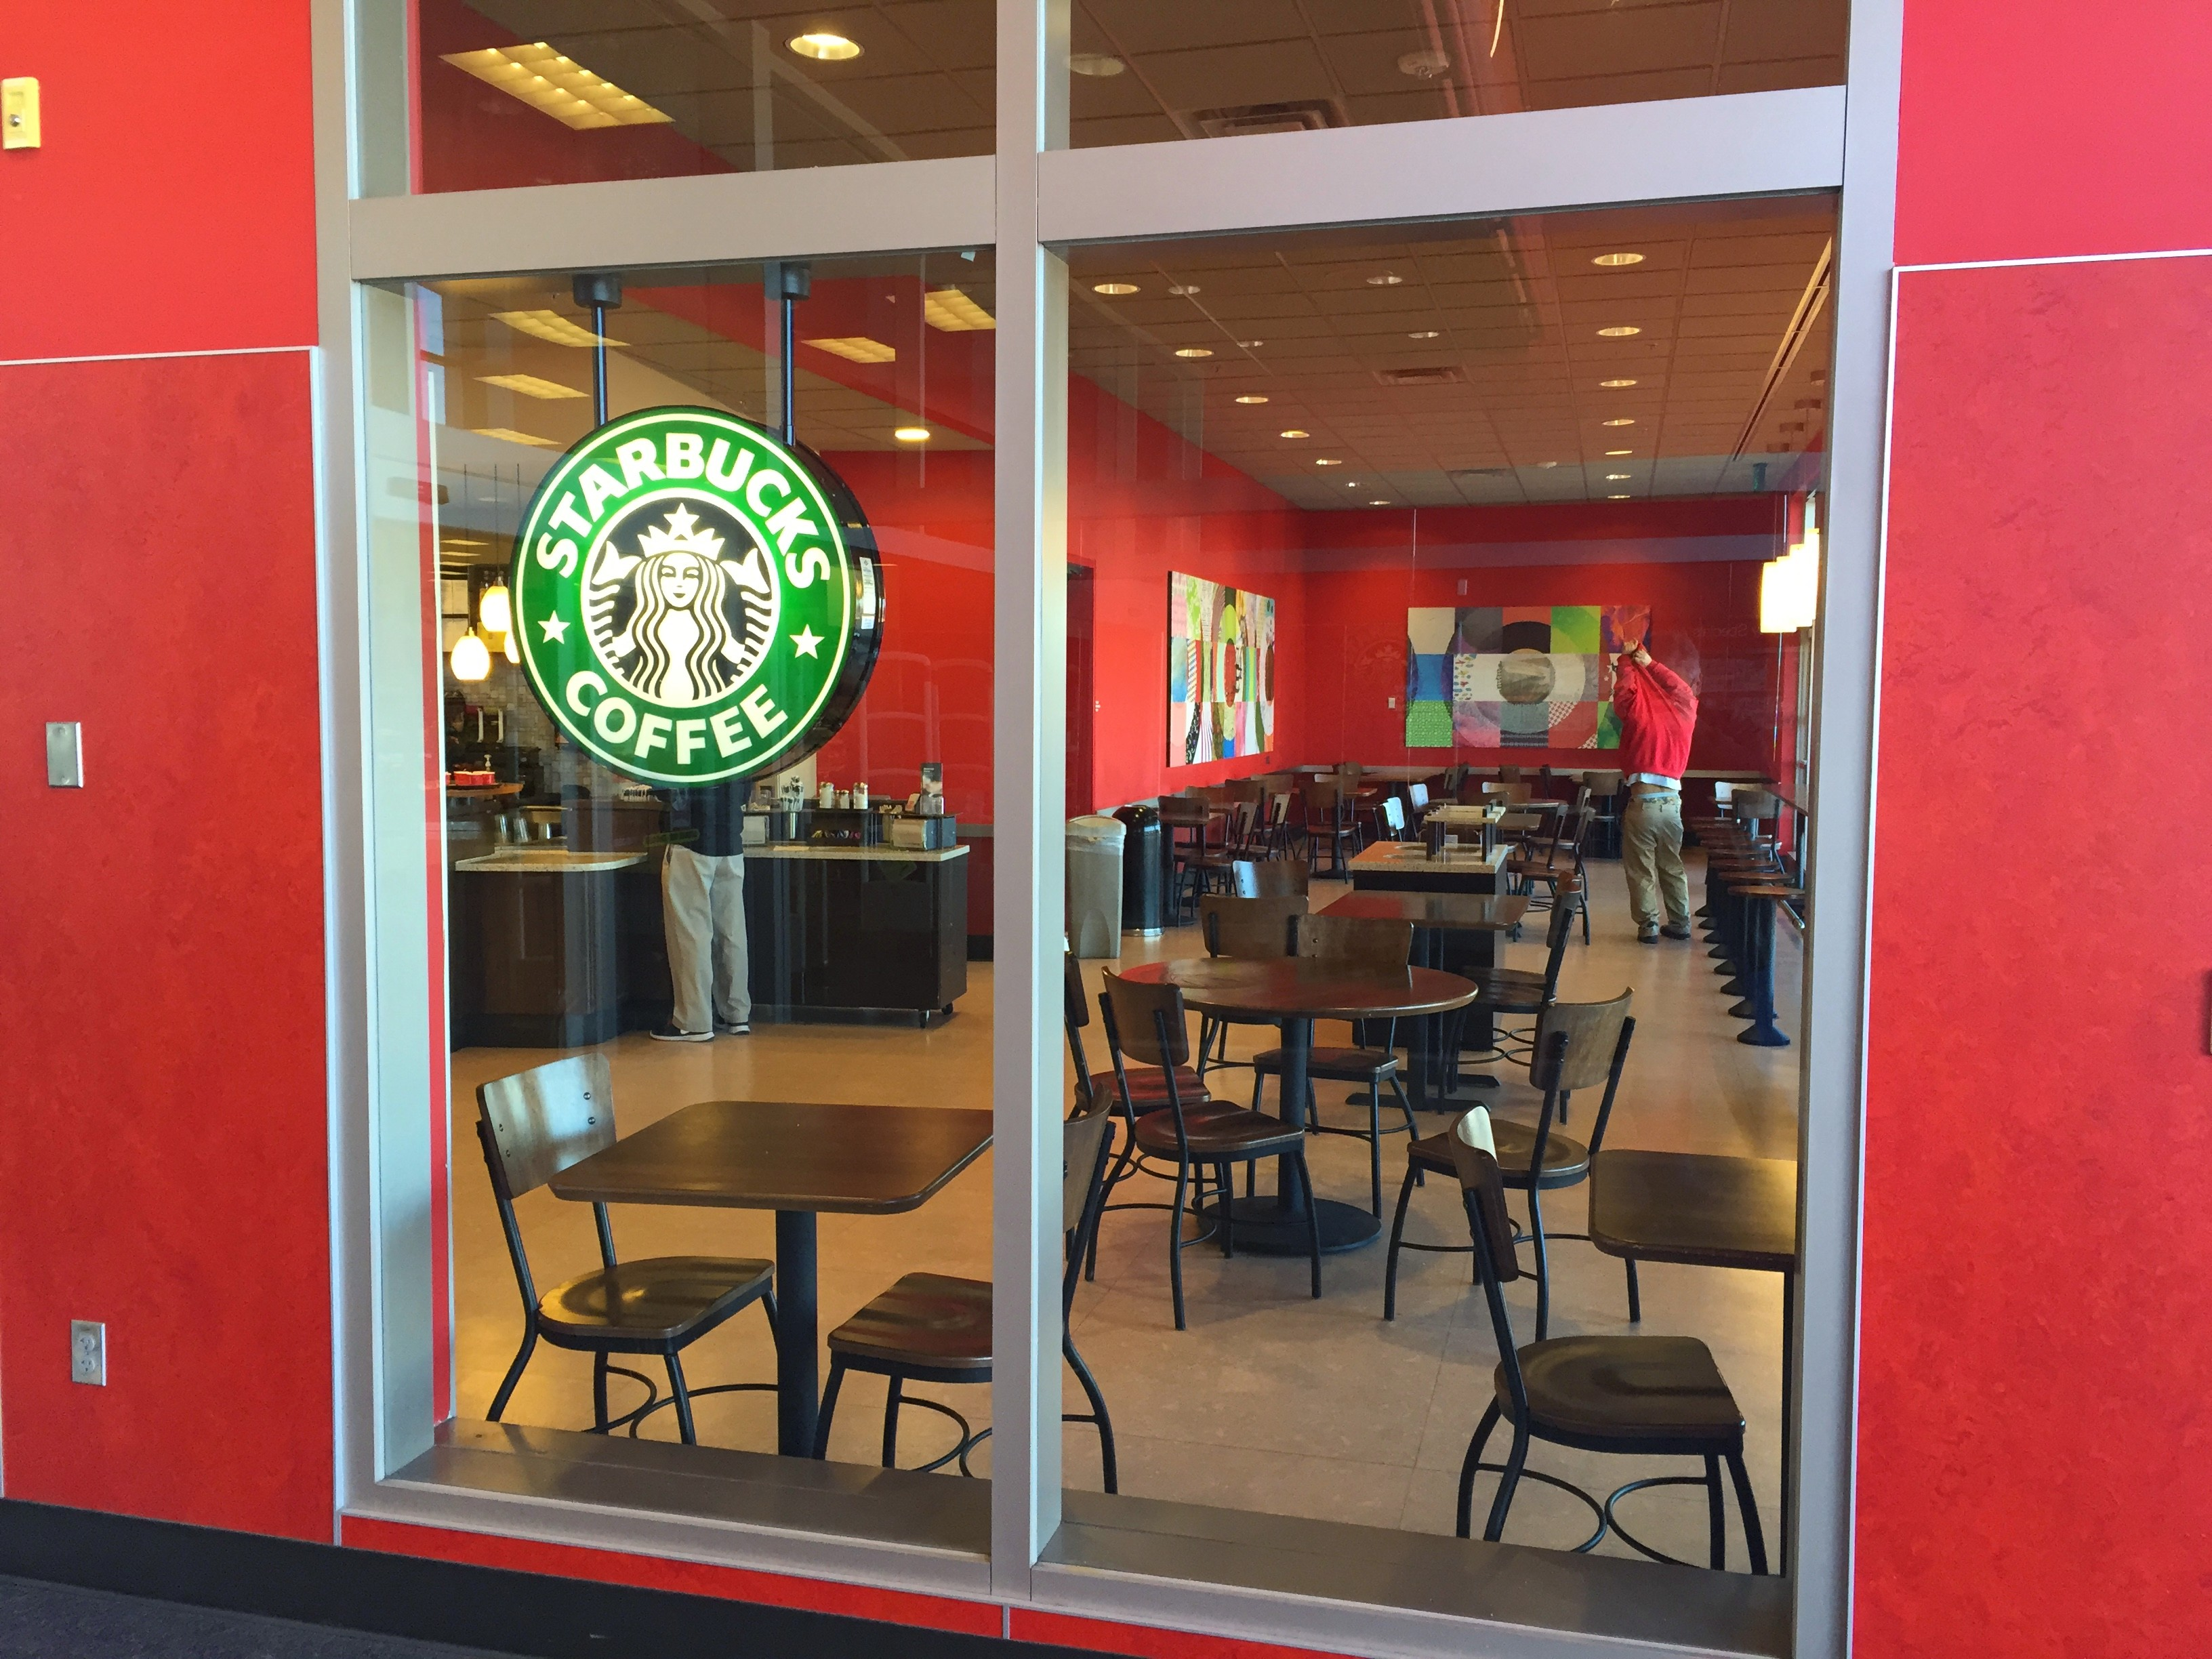 Gaming Venue: Starbucks at Target in Wylie | dicehaven.com